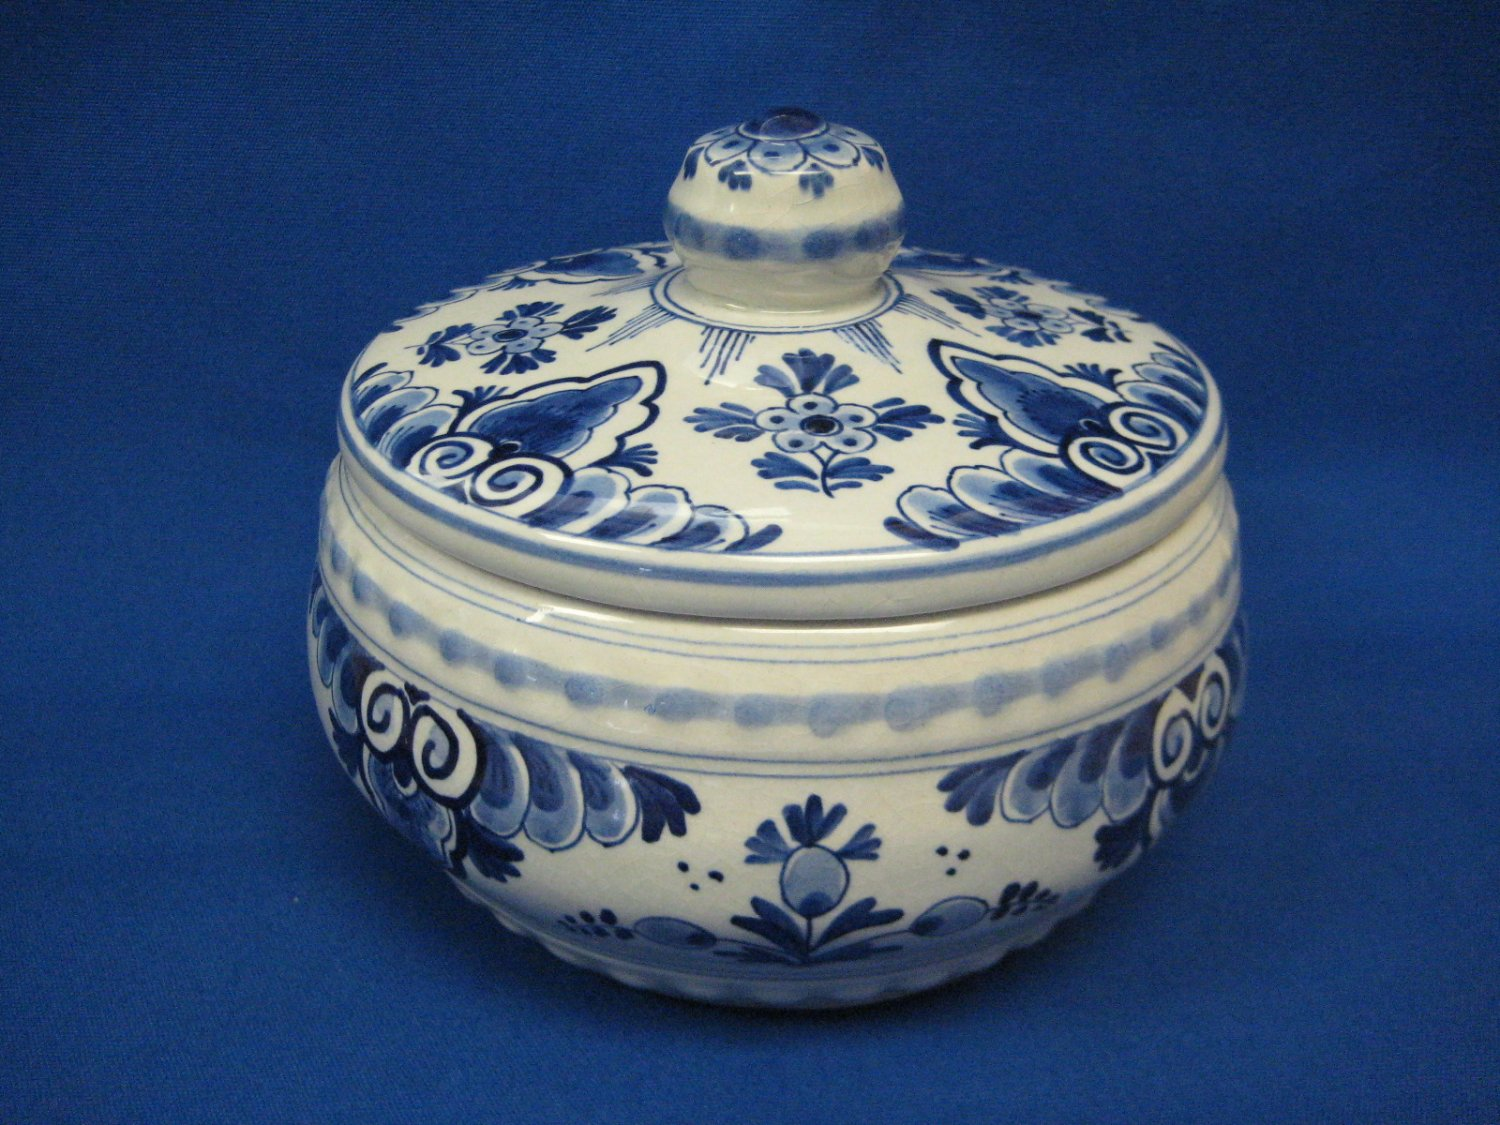 1954 De Porceleyne Fles Royal Delft Bonbon or Candy Dish